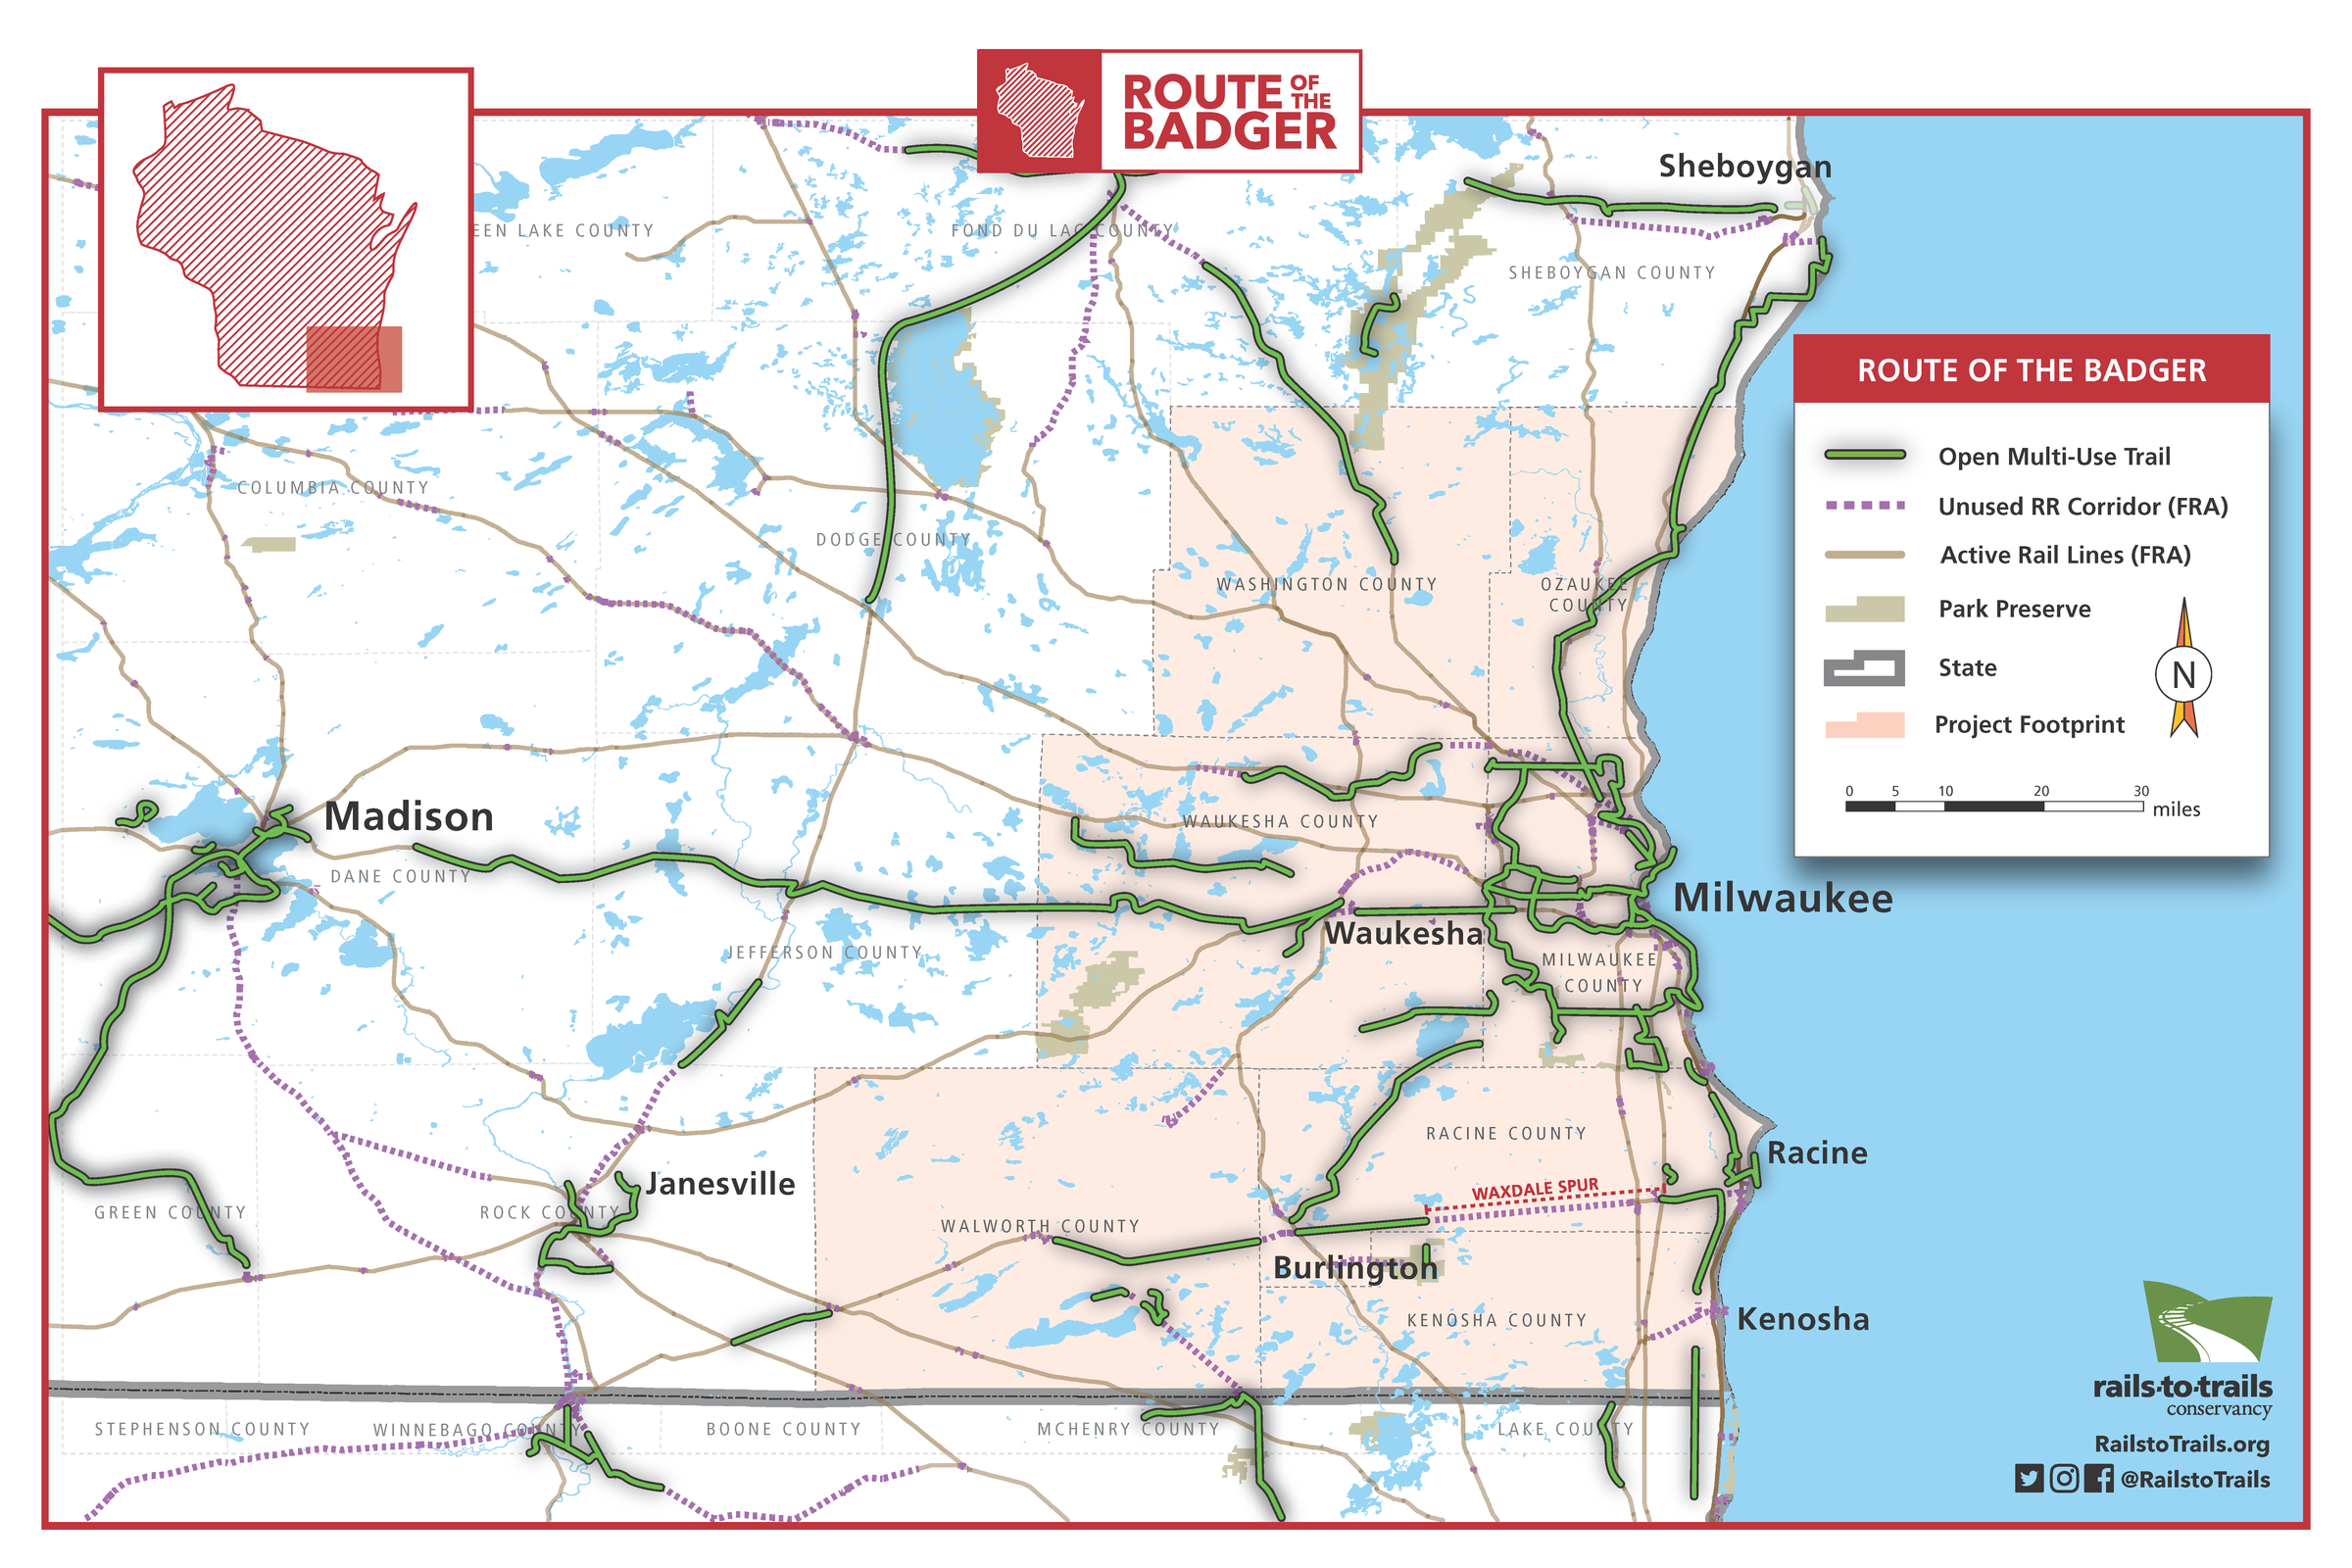 Route of the Badger: Planning a 500-Mile Trail Network to ... on wisconsin altitude map, wisconsin reservation map, wisconsin state highway map, wisconsin zone map, wisconsin detours map, wisconsin hwy map, wisconsin road map,